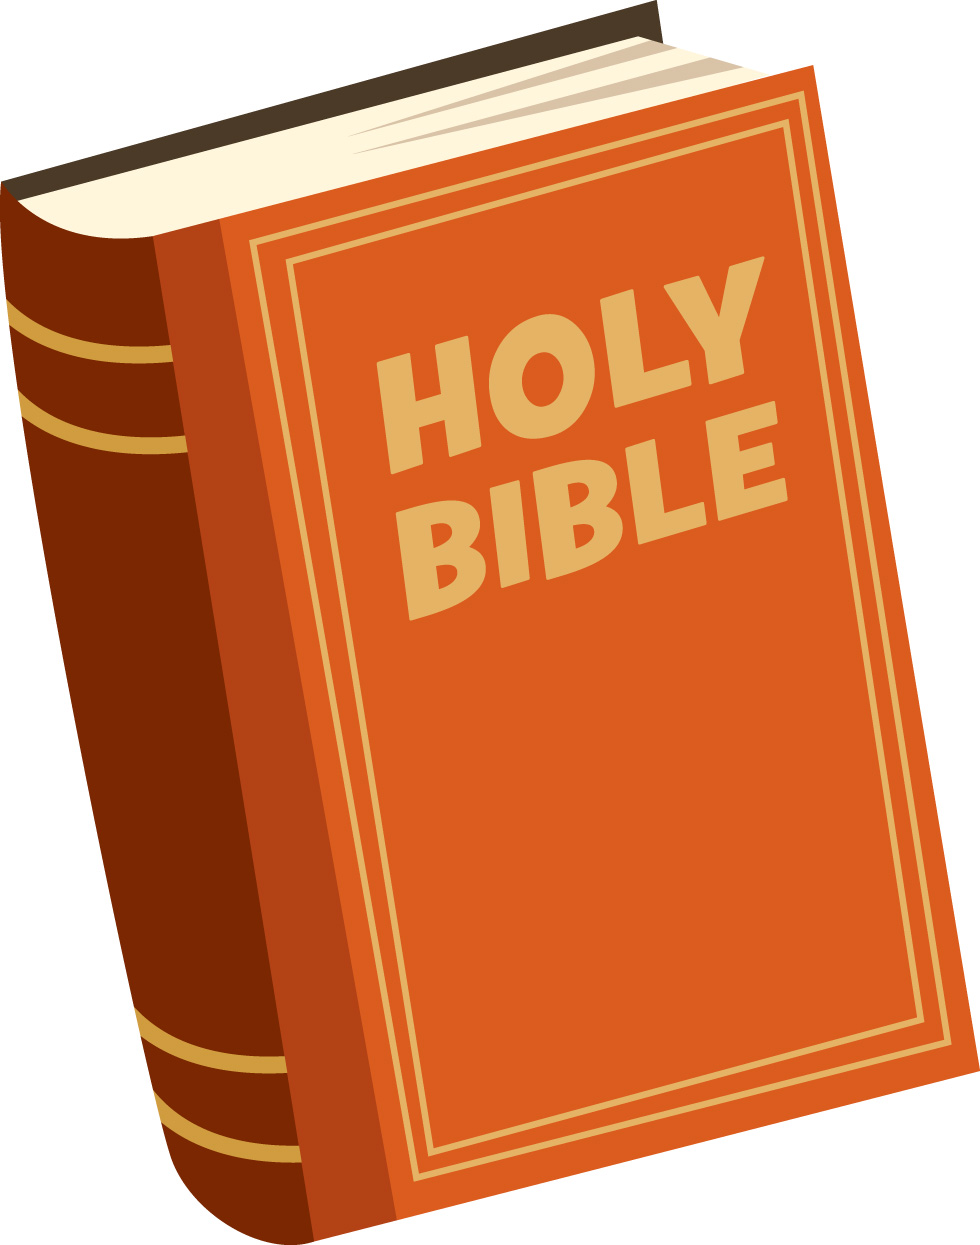 Bibl clipart image free Free Bible Clipart, Download Free Clip Art, Free Clip Art on Clipart ... image free